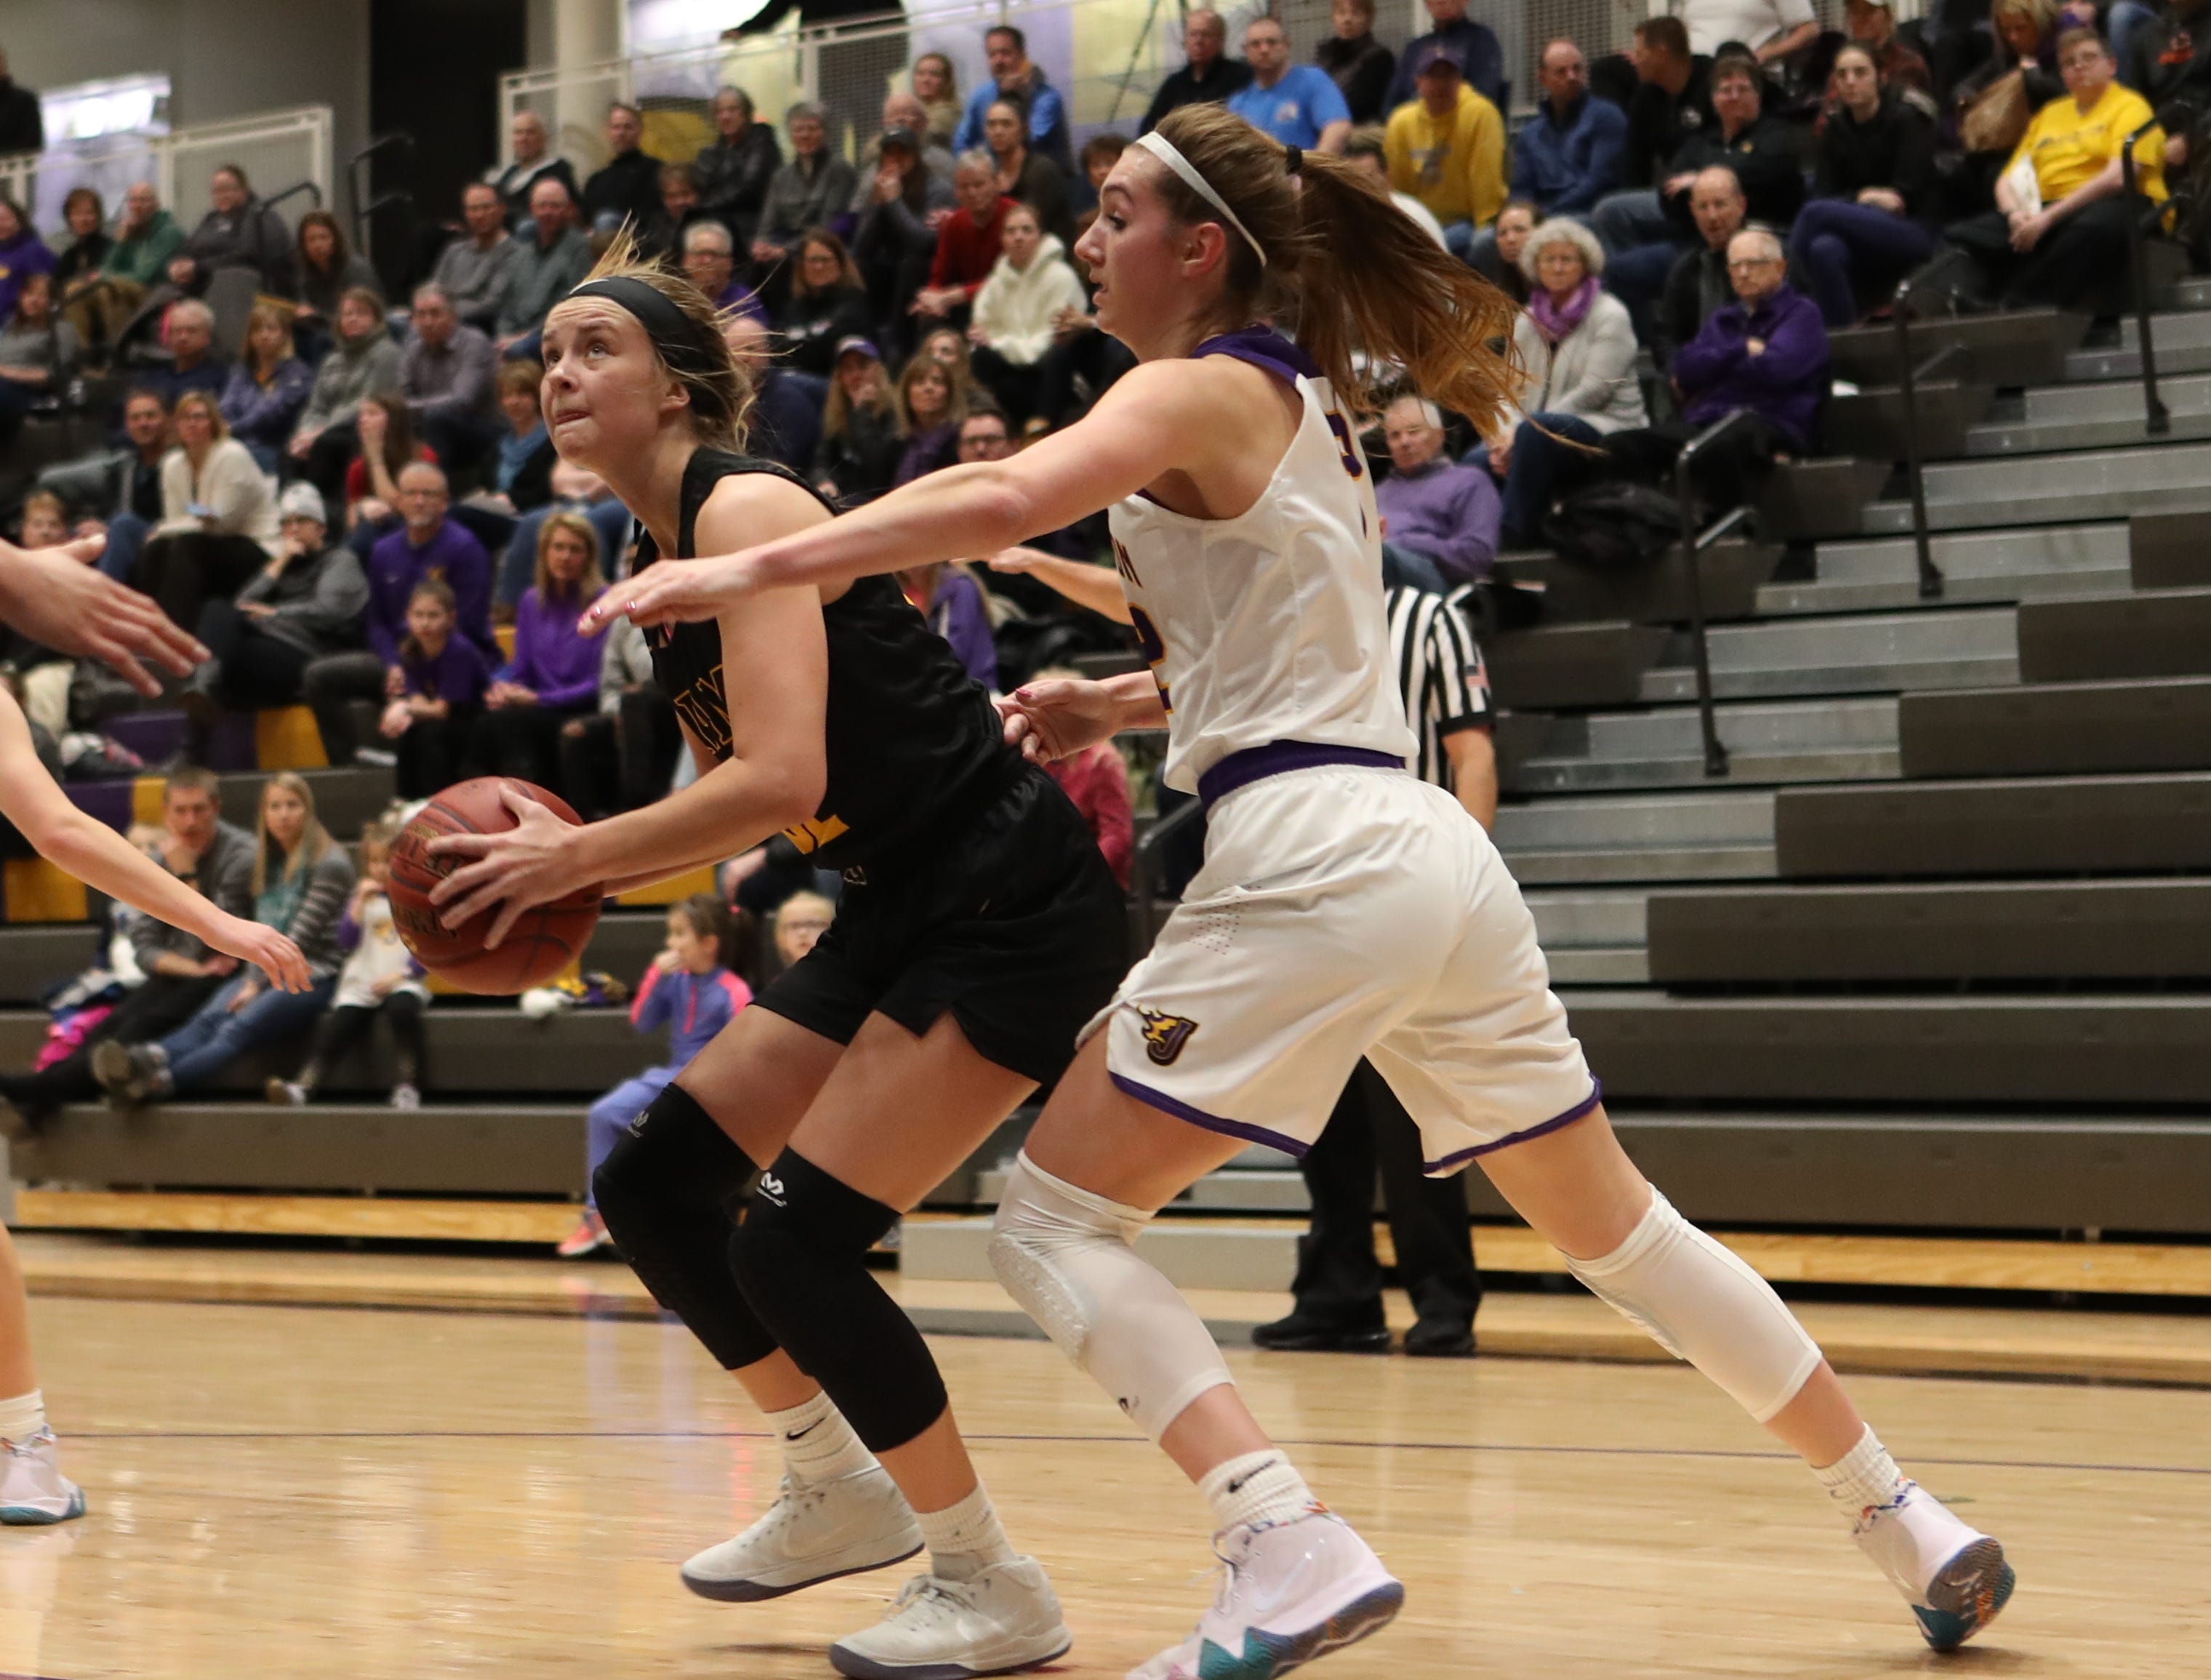 Southeast Polk's Maggie McGraw (32) drives to the basket Feb. 5 in a game against No. 1 Johnston at Johnston High School. The Dragons won the game 89-67. McGraw had 23 points.